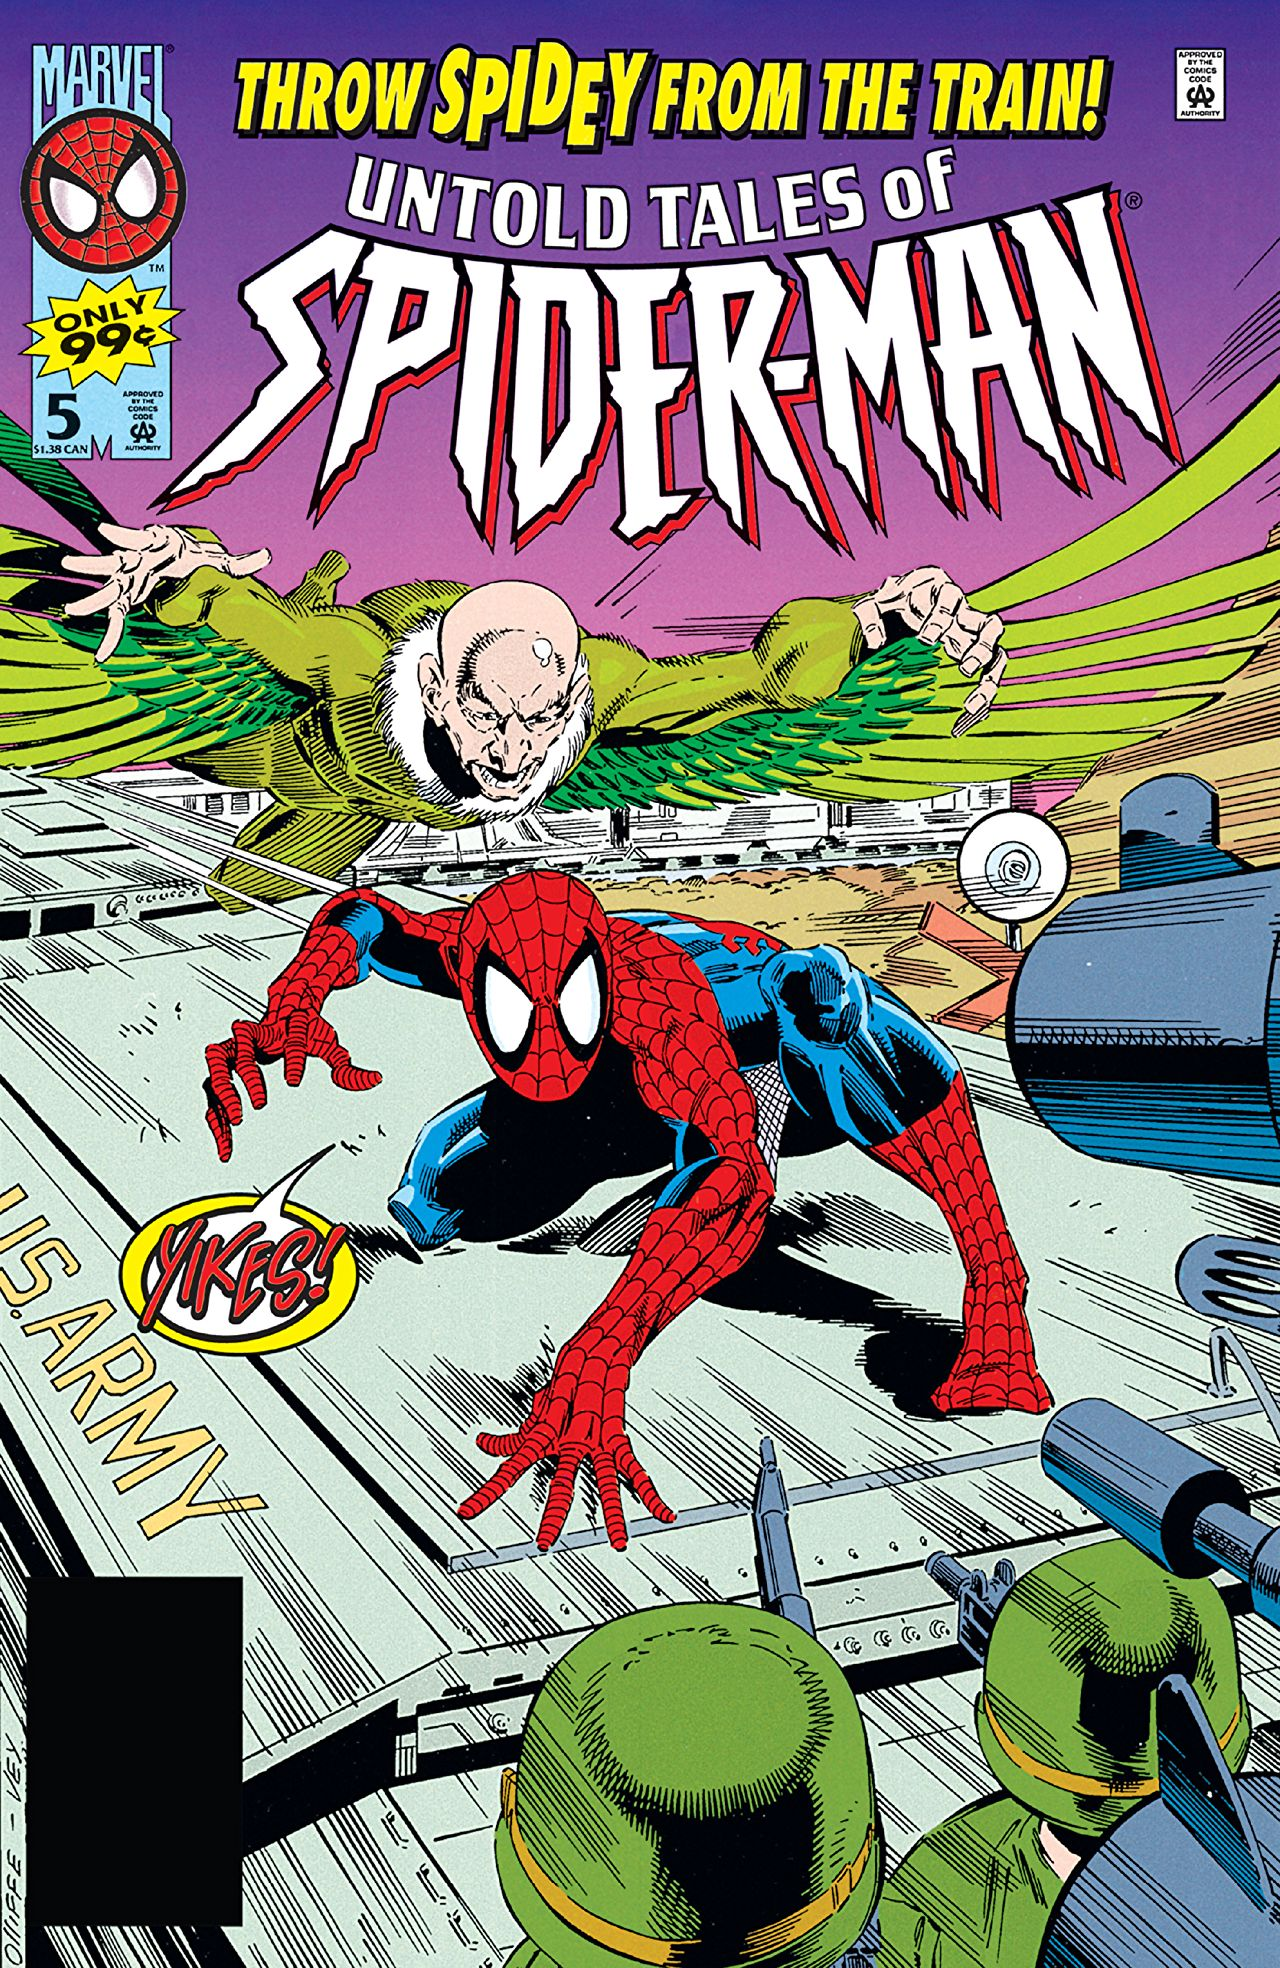 Untold Tales of Spider-Man Vol 1 5.jpg